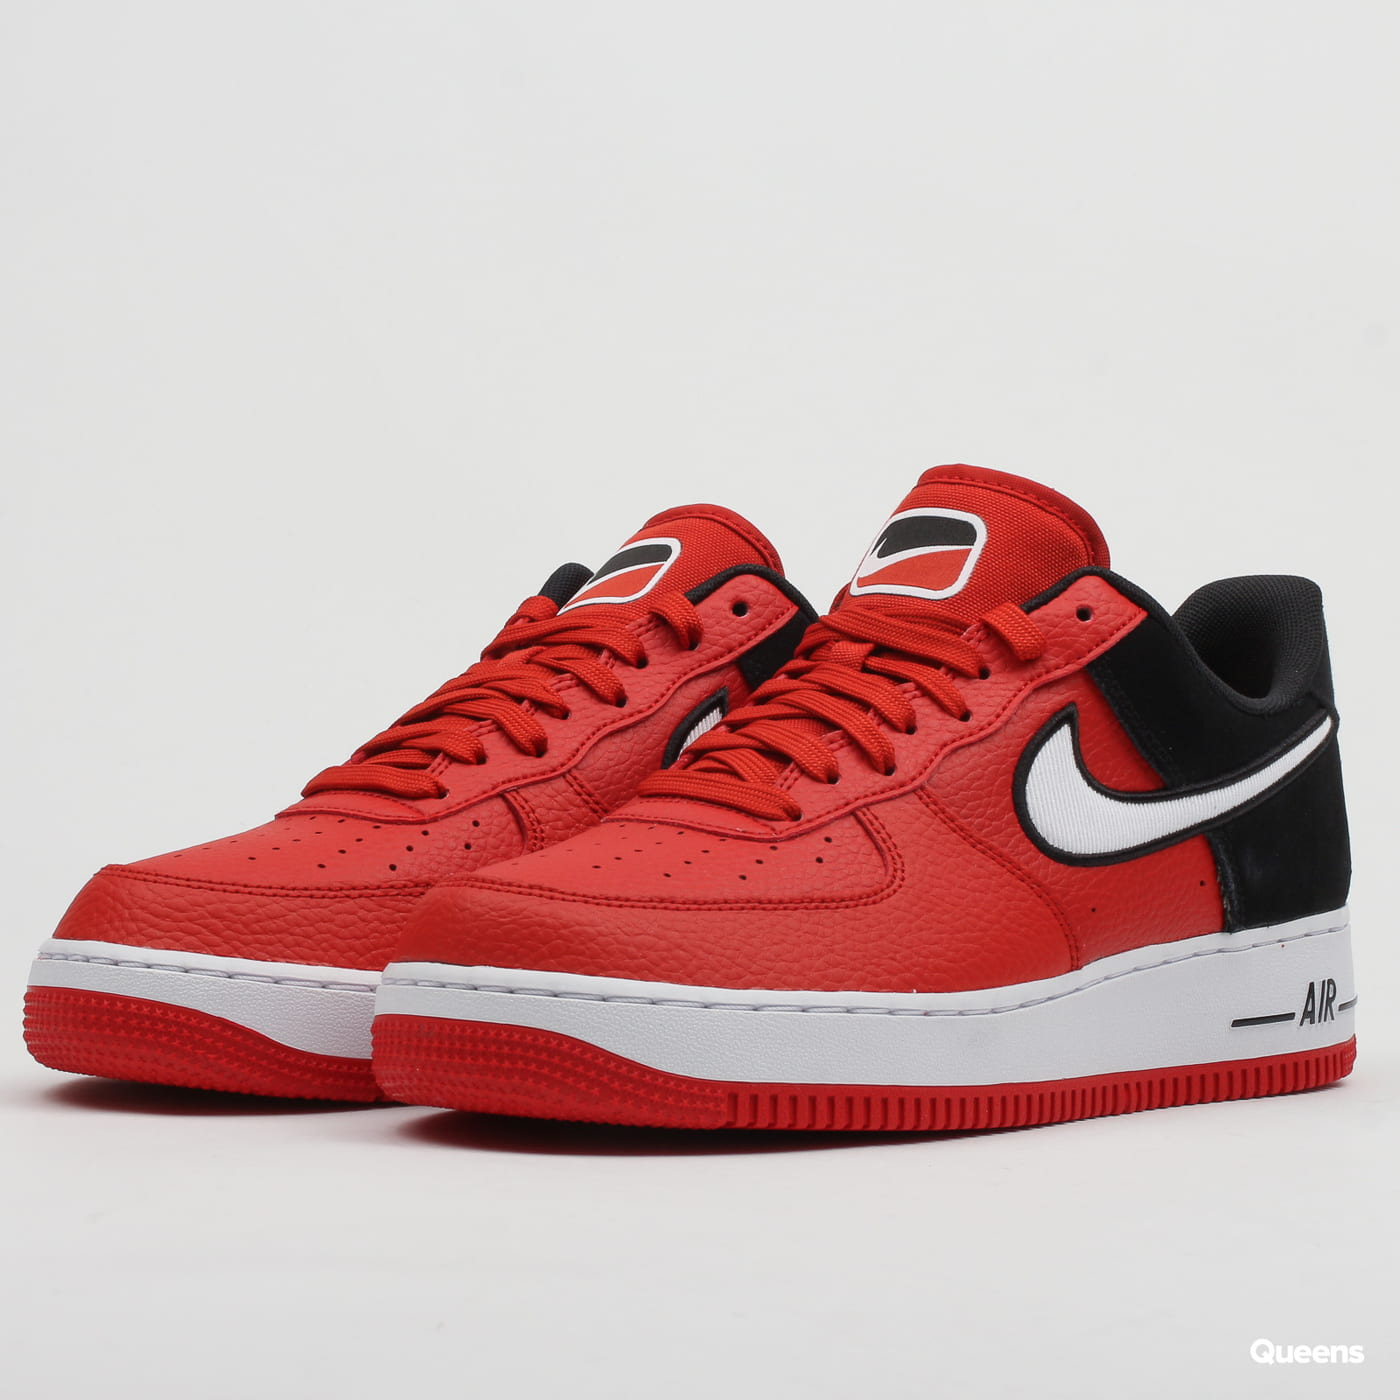 new style 8bd53 37c3b Sneakers Nike Air Force 1 '07 LV8 1 mystic red / white - black (AO2439-600)  – Queens 💚